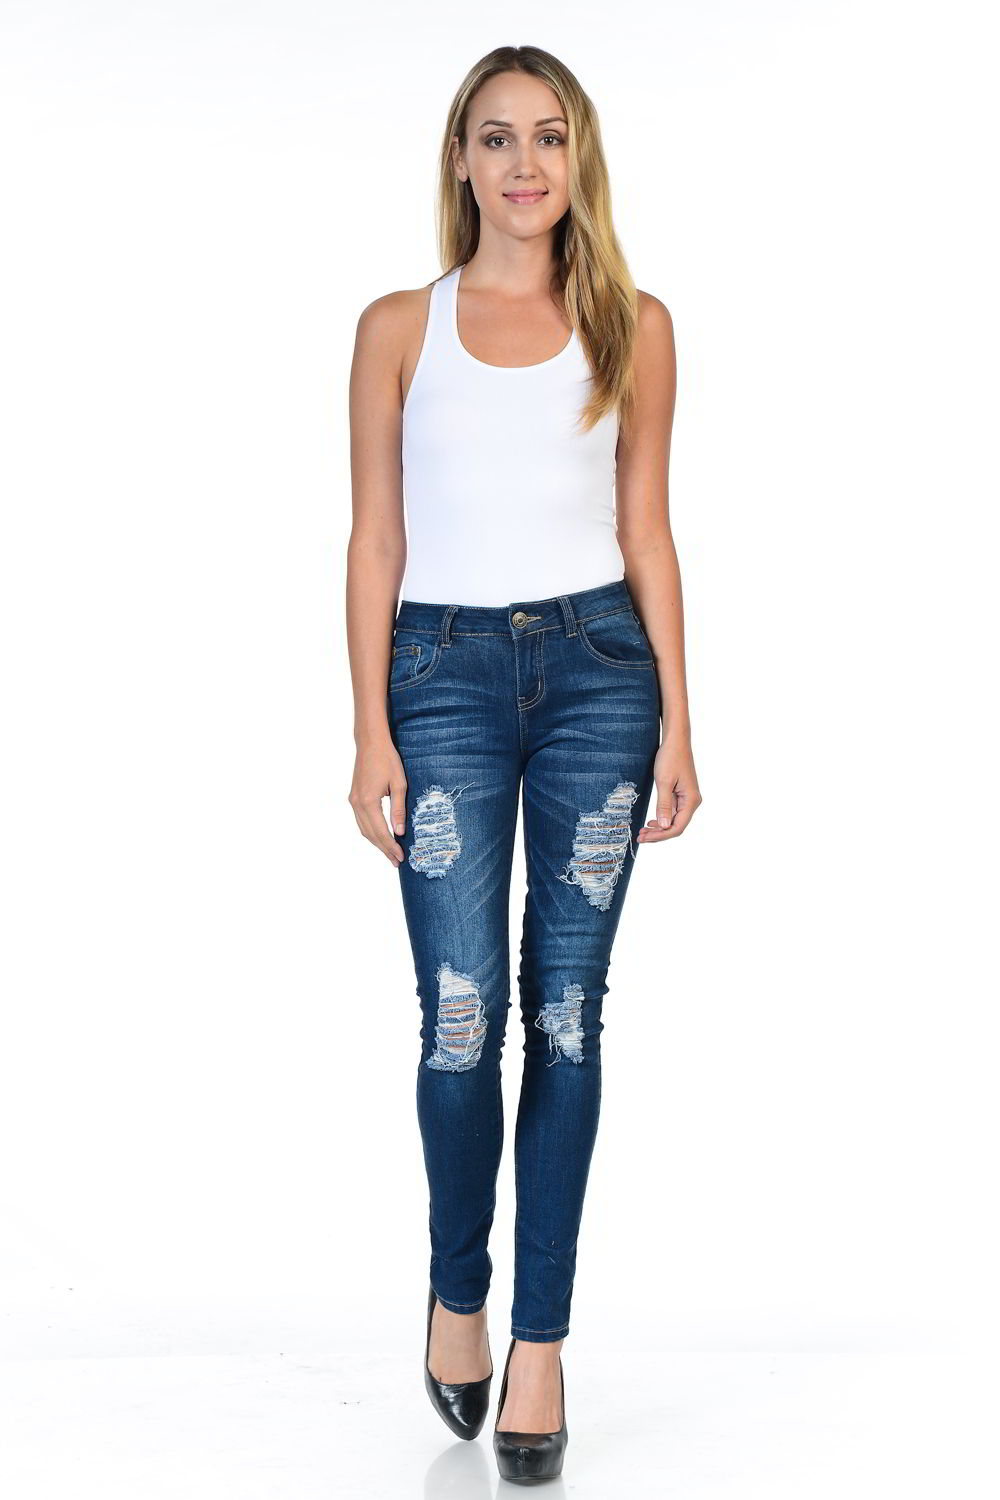 Sweet Look Premium Edition Women's Jeans - Push Up - Style WY5005-R